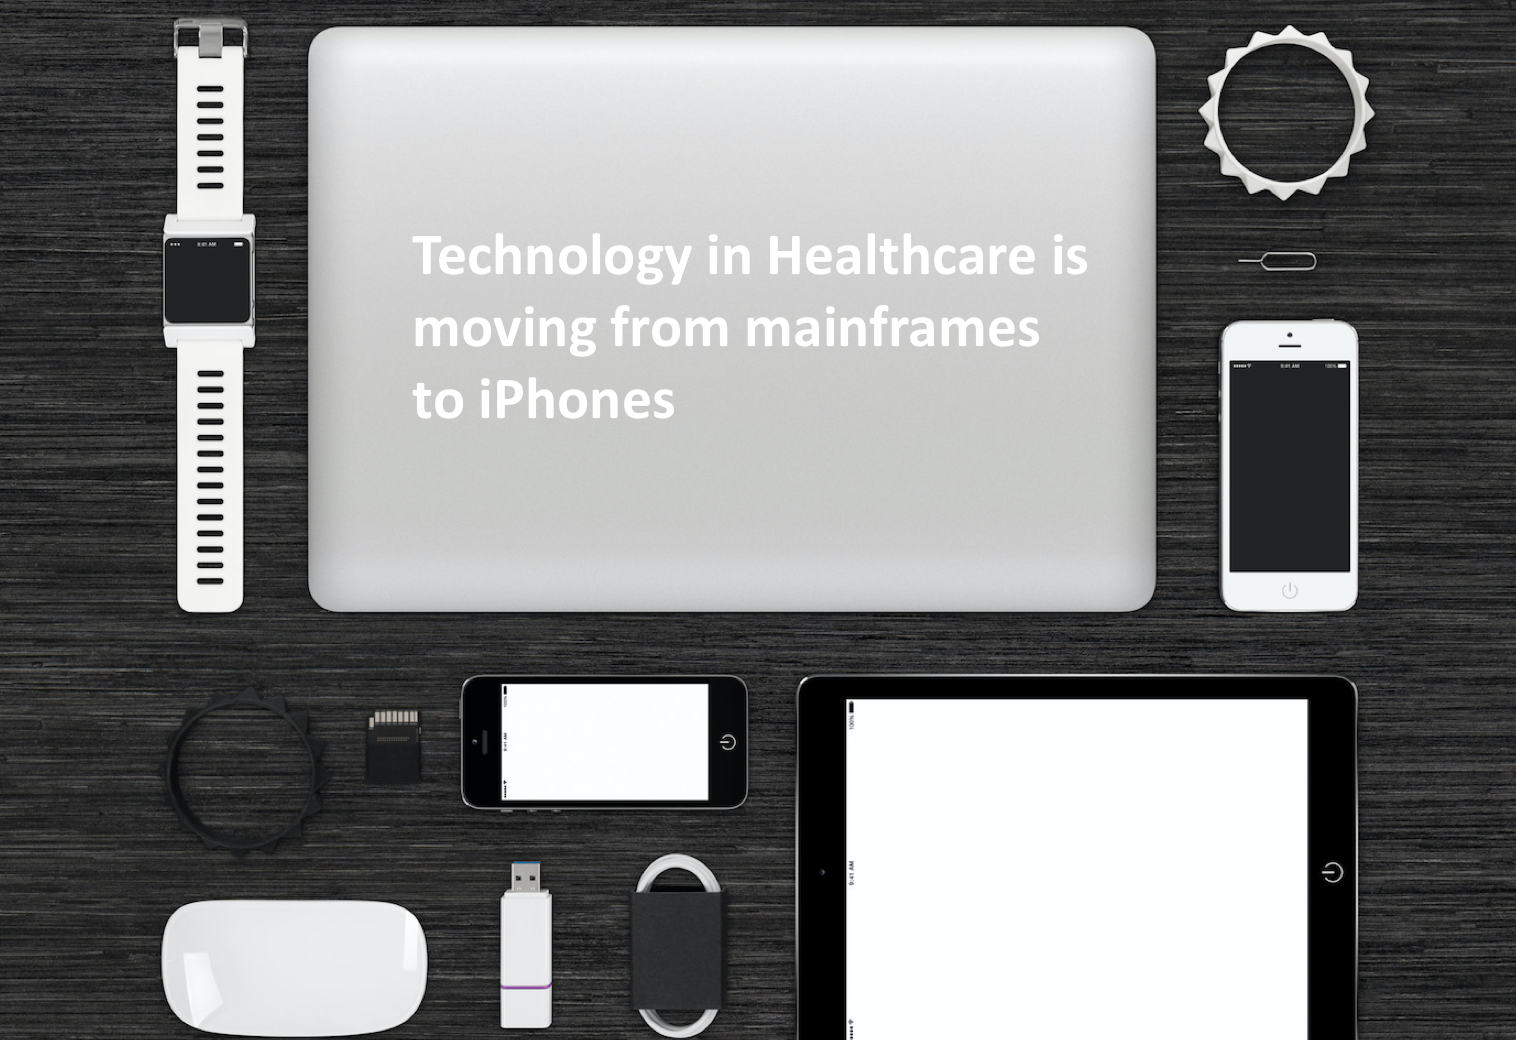 Enchanting Main Frames Photos Ideas Handmade Webdiagrampng Technology In Healthcare Is Moving From Mainframes To Iphones